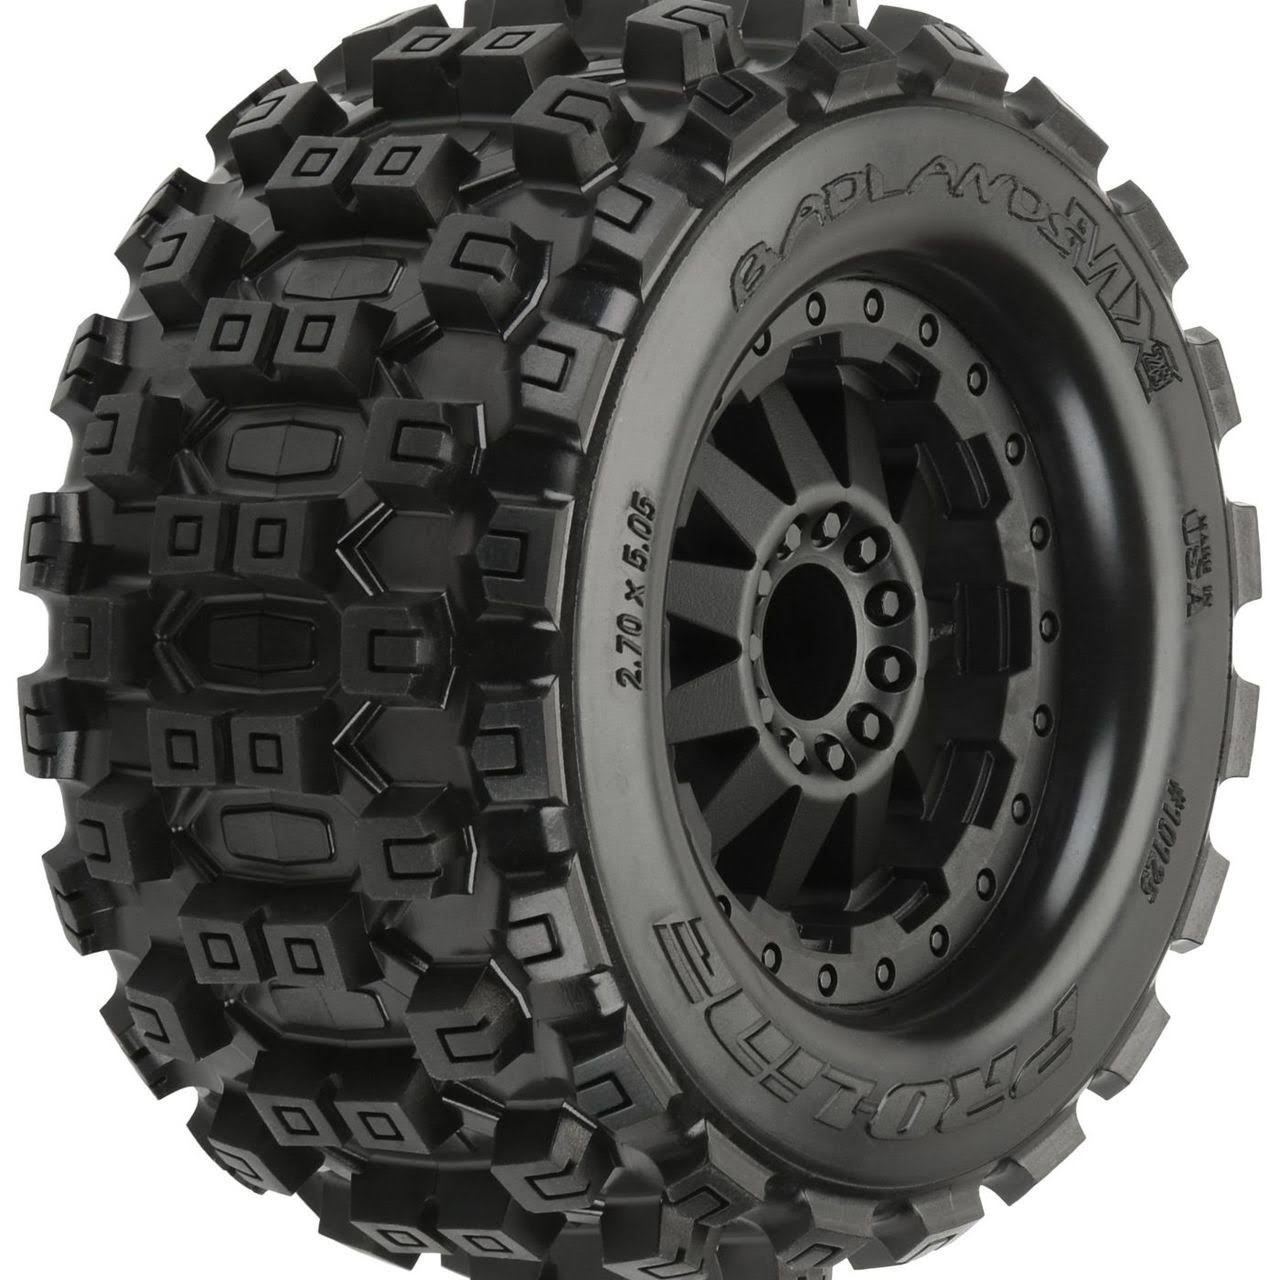 Pro Line Badlands Mx28 Tires Mounted F and R - 2.8""